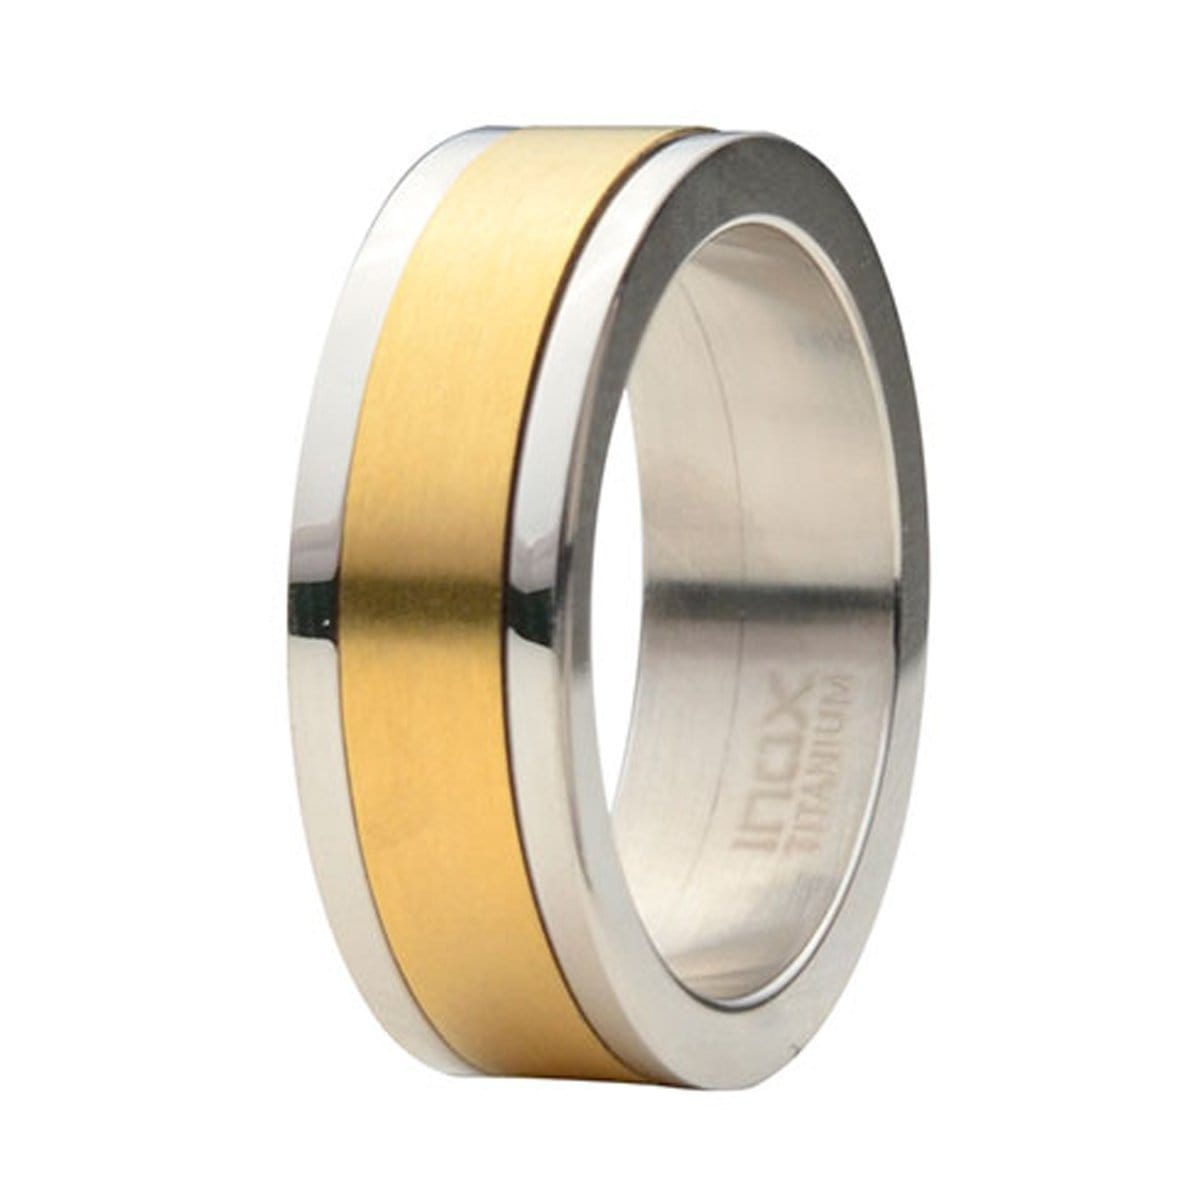 Silver Titanium Ring with Gold Spinner in the middle Rings